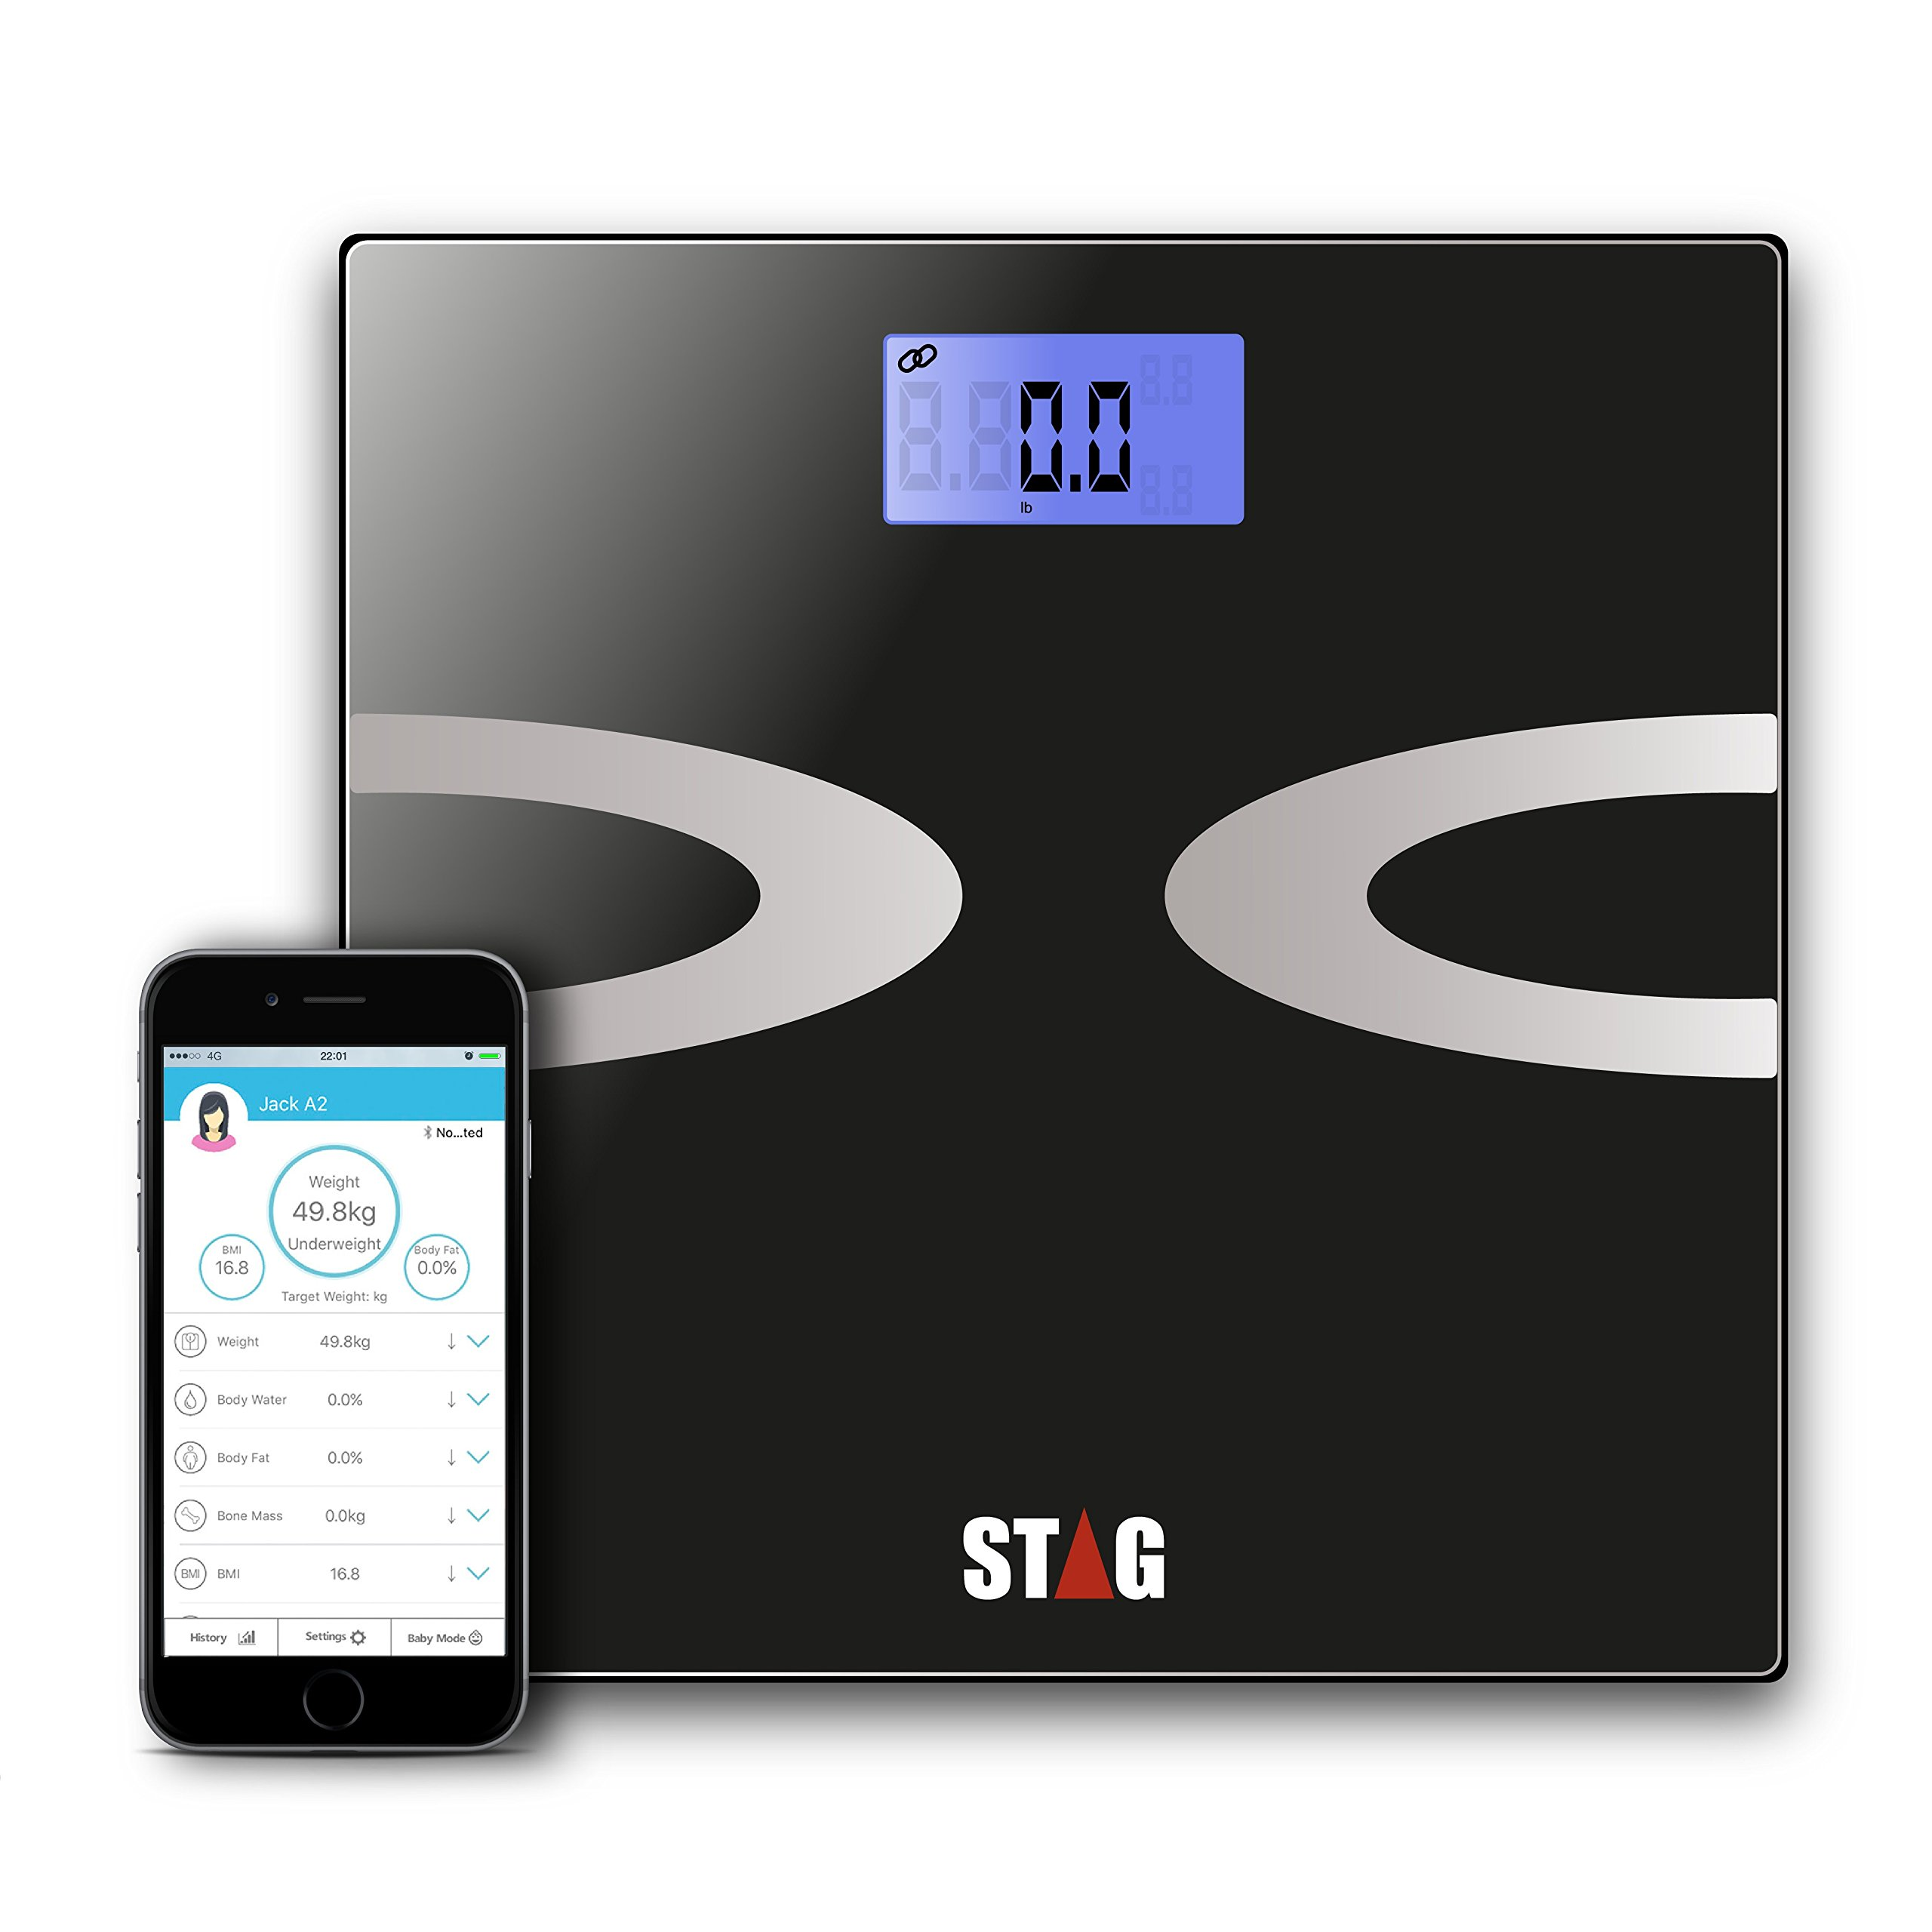 Digital Body Fat Scale - Best Smart Wireless - Weight - Bathroom - Body Composition Analyzer with iOS and Android App for Body Weight - Fat - Water - Bmi - Muscle Mass - 396 lbs